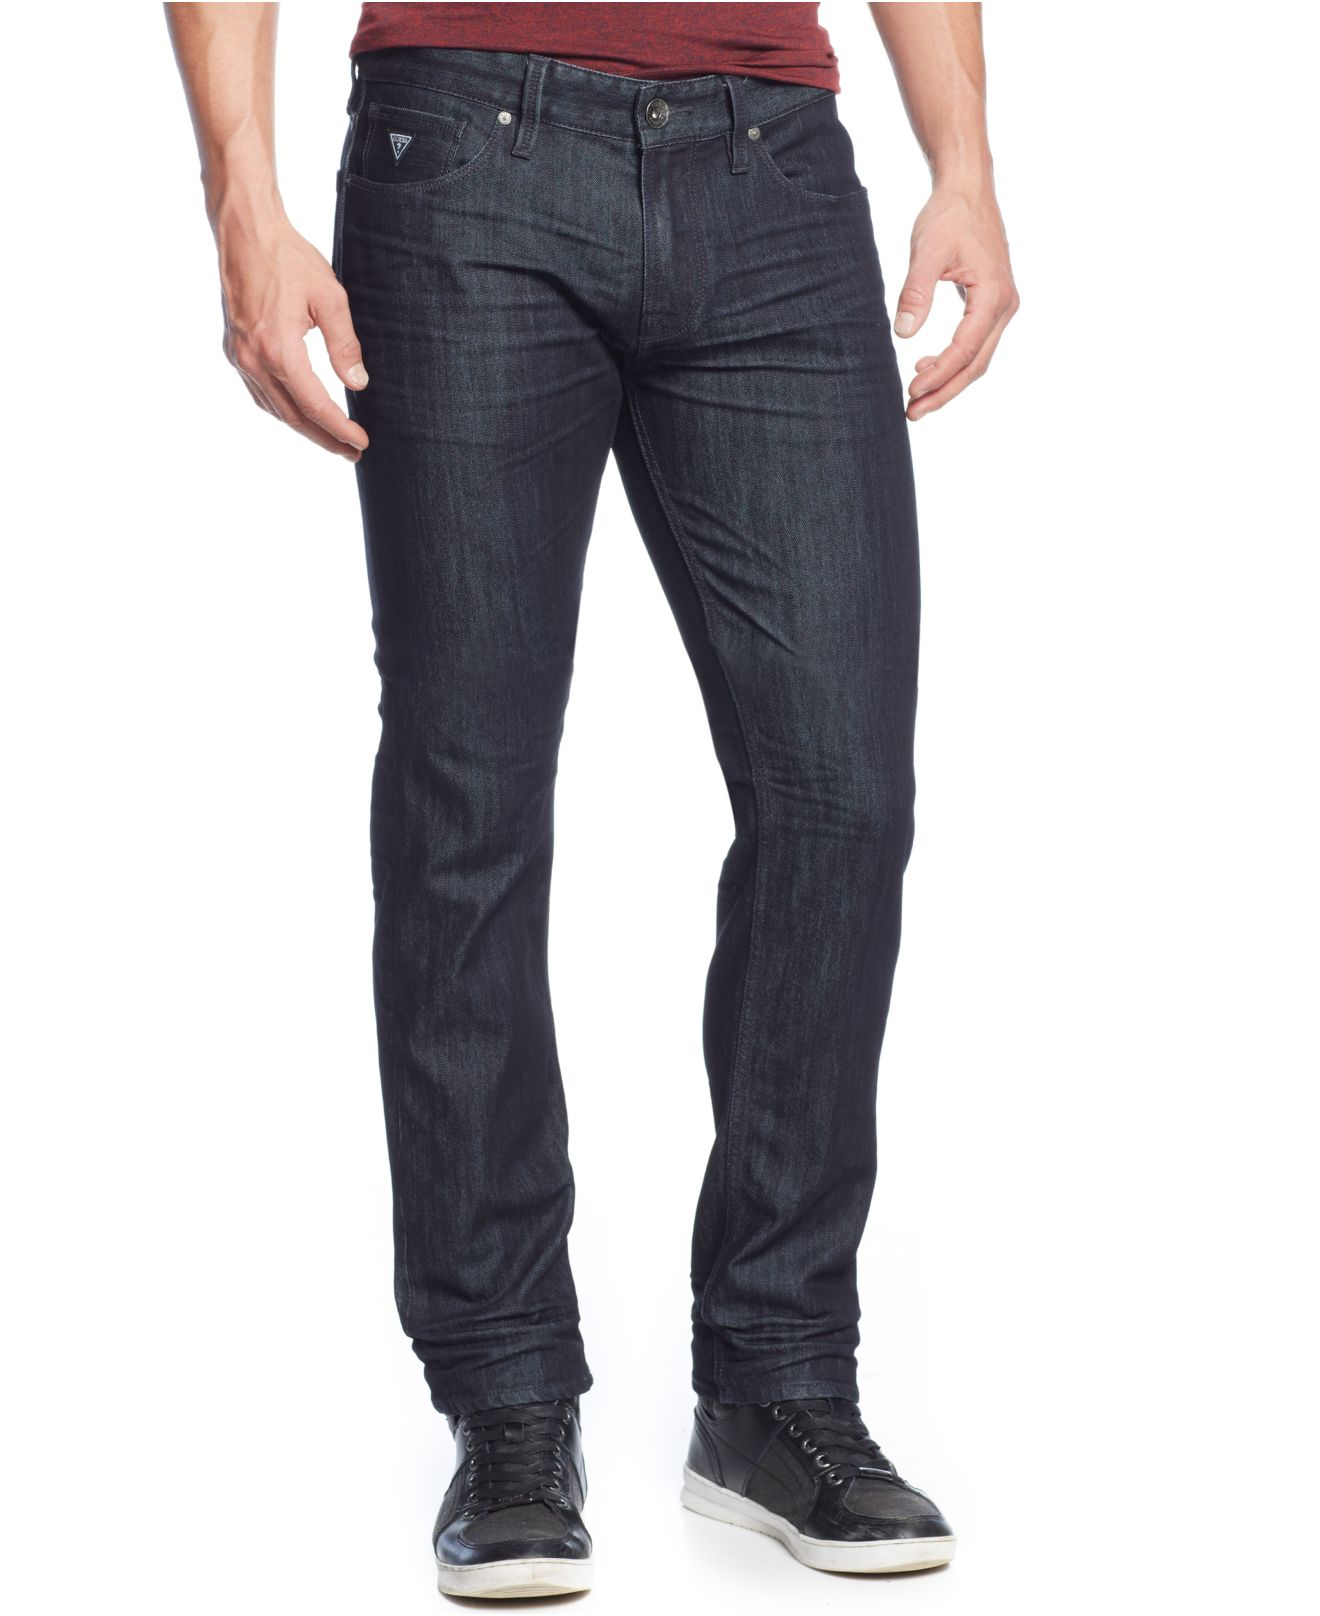 Standard Classic straight fit - comfortable from waist to hip with a straight leg opening. Austyn Roomy all around with a relaxed leg opening, for a cool, slouchy look. Brett Modern bootcut - comfortable throughout, yet slightly slimmer than the traditional bootcut.